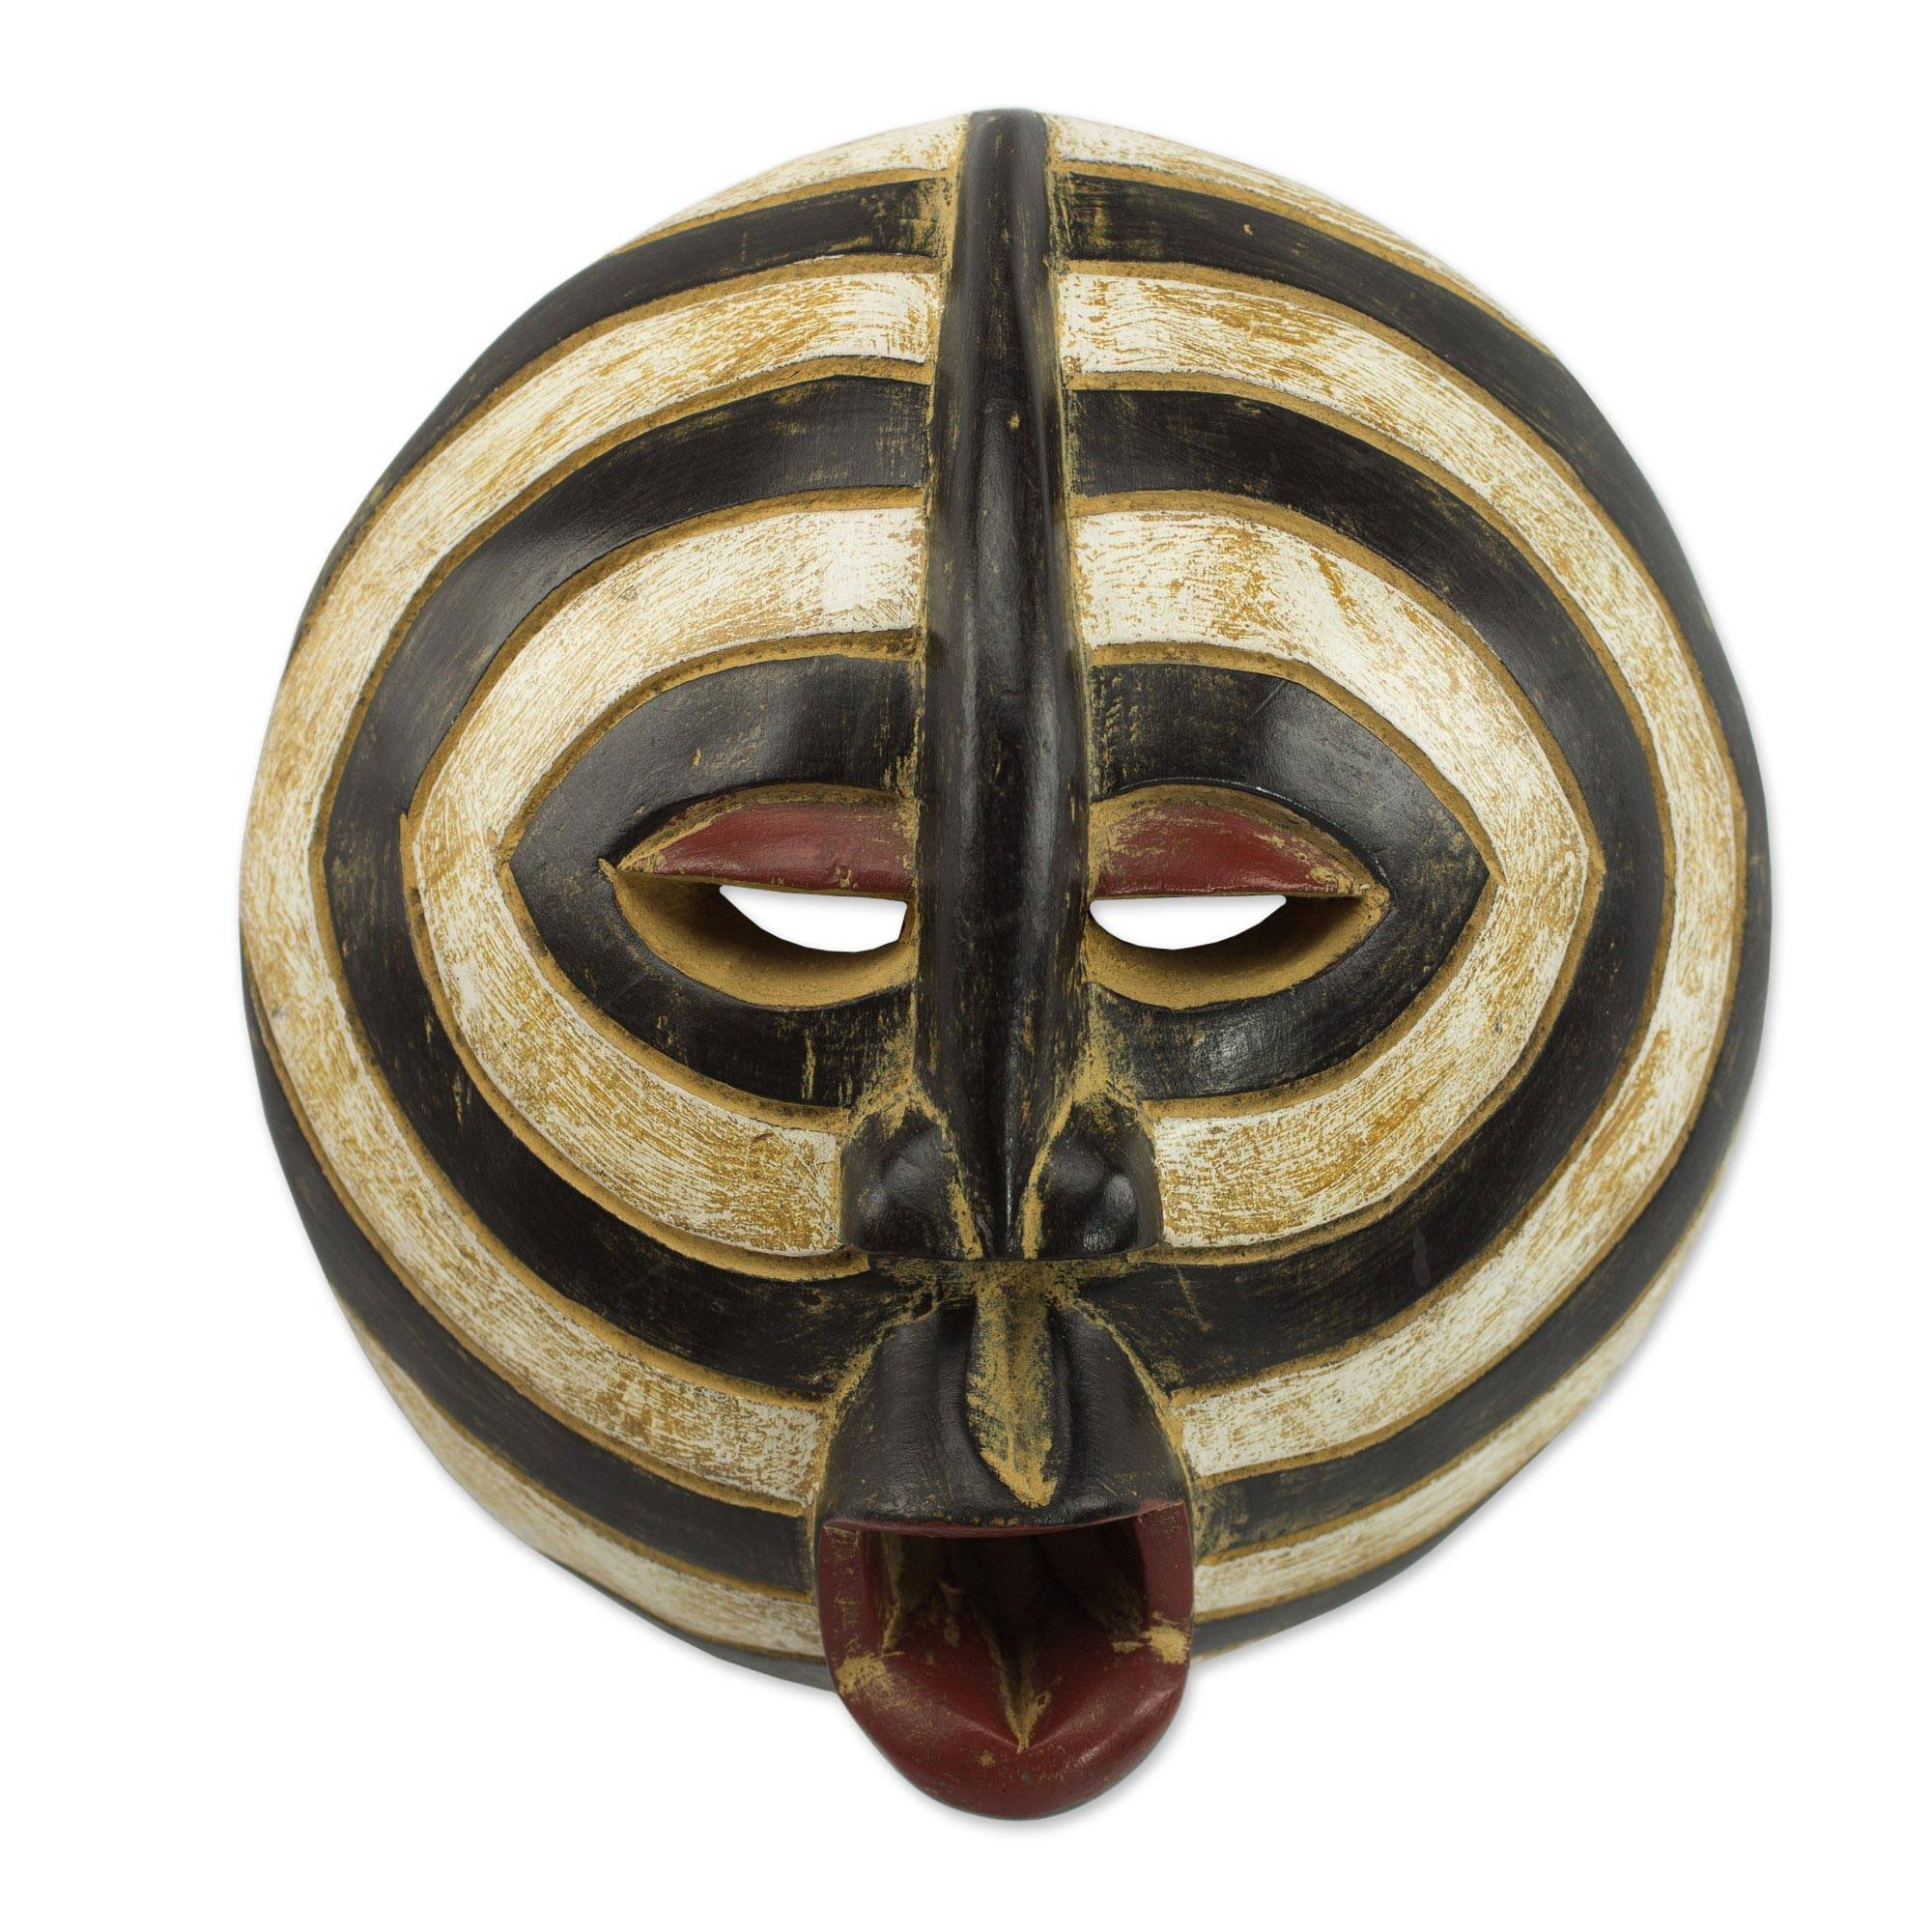 NOVICA Ghanaian Hand Carved Painted Black and White Sese Wood Wall Mask, 'Baluba Rings' by NOVICA